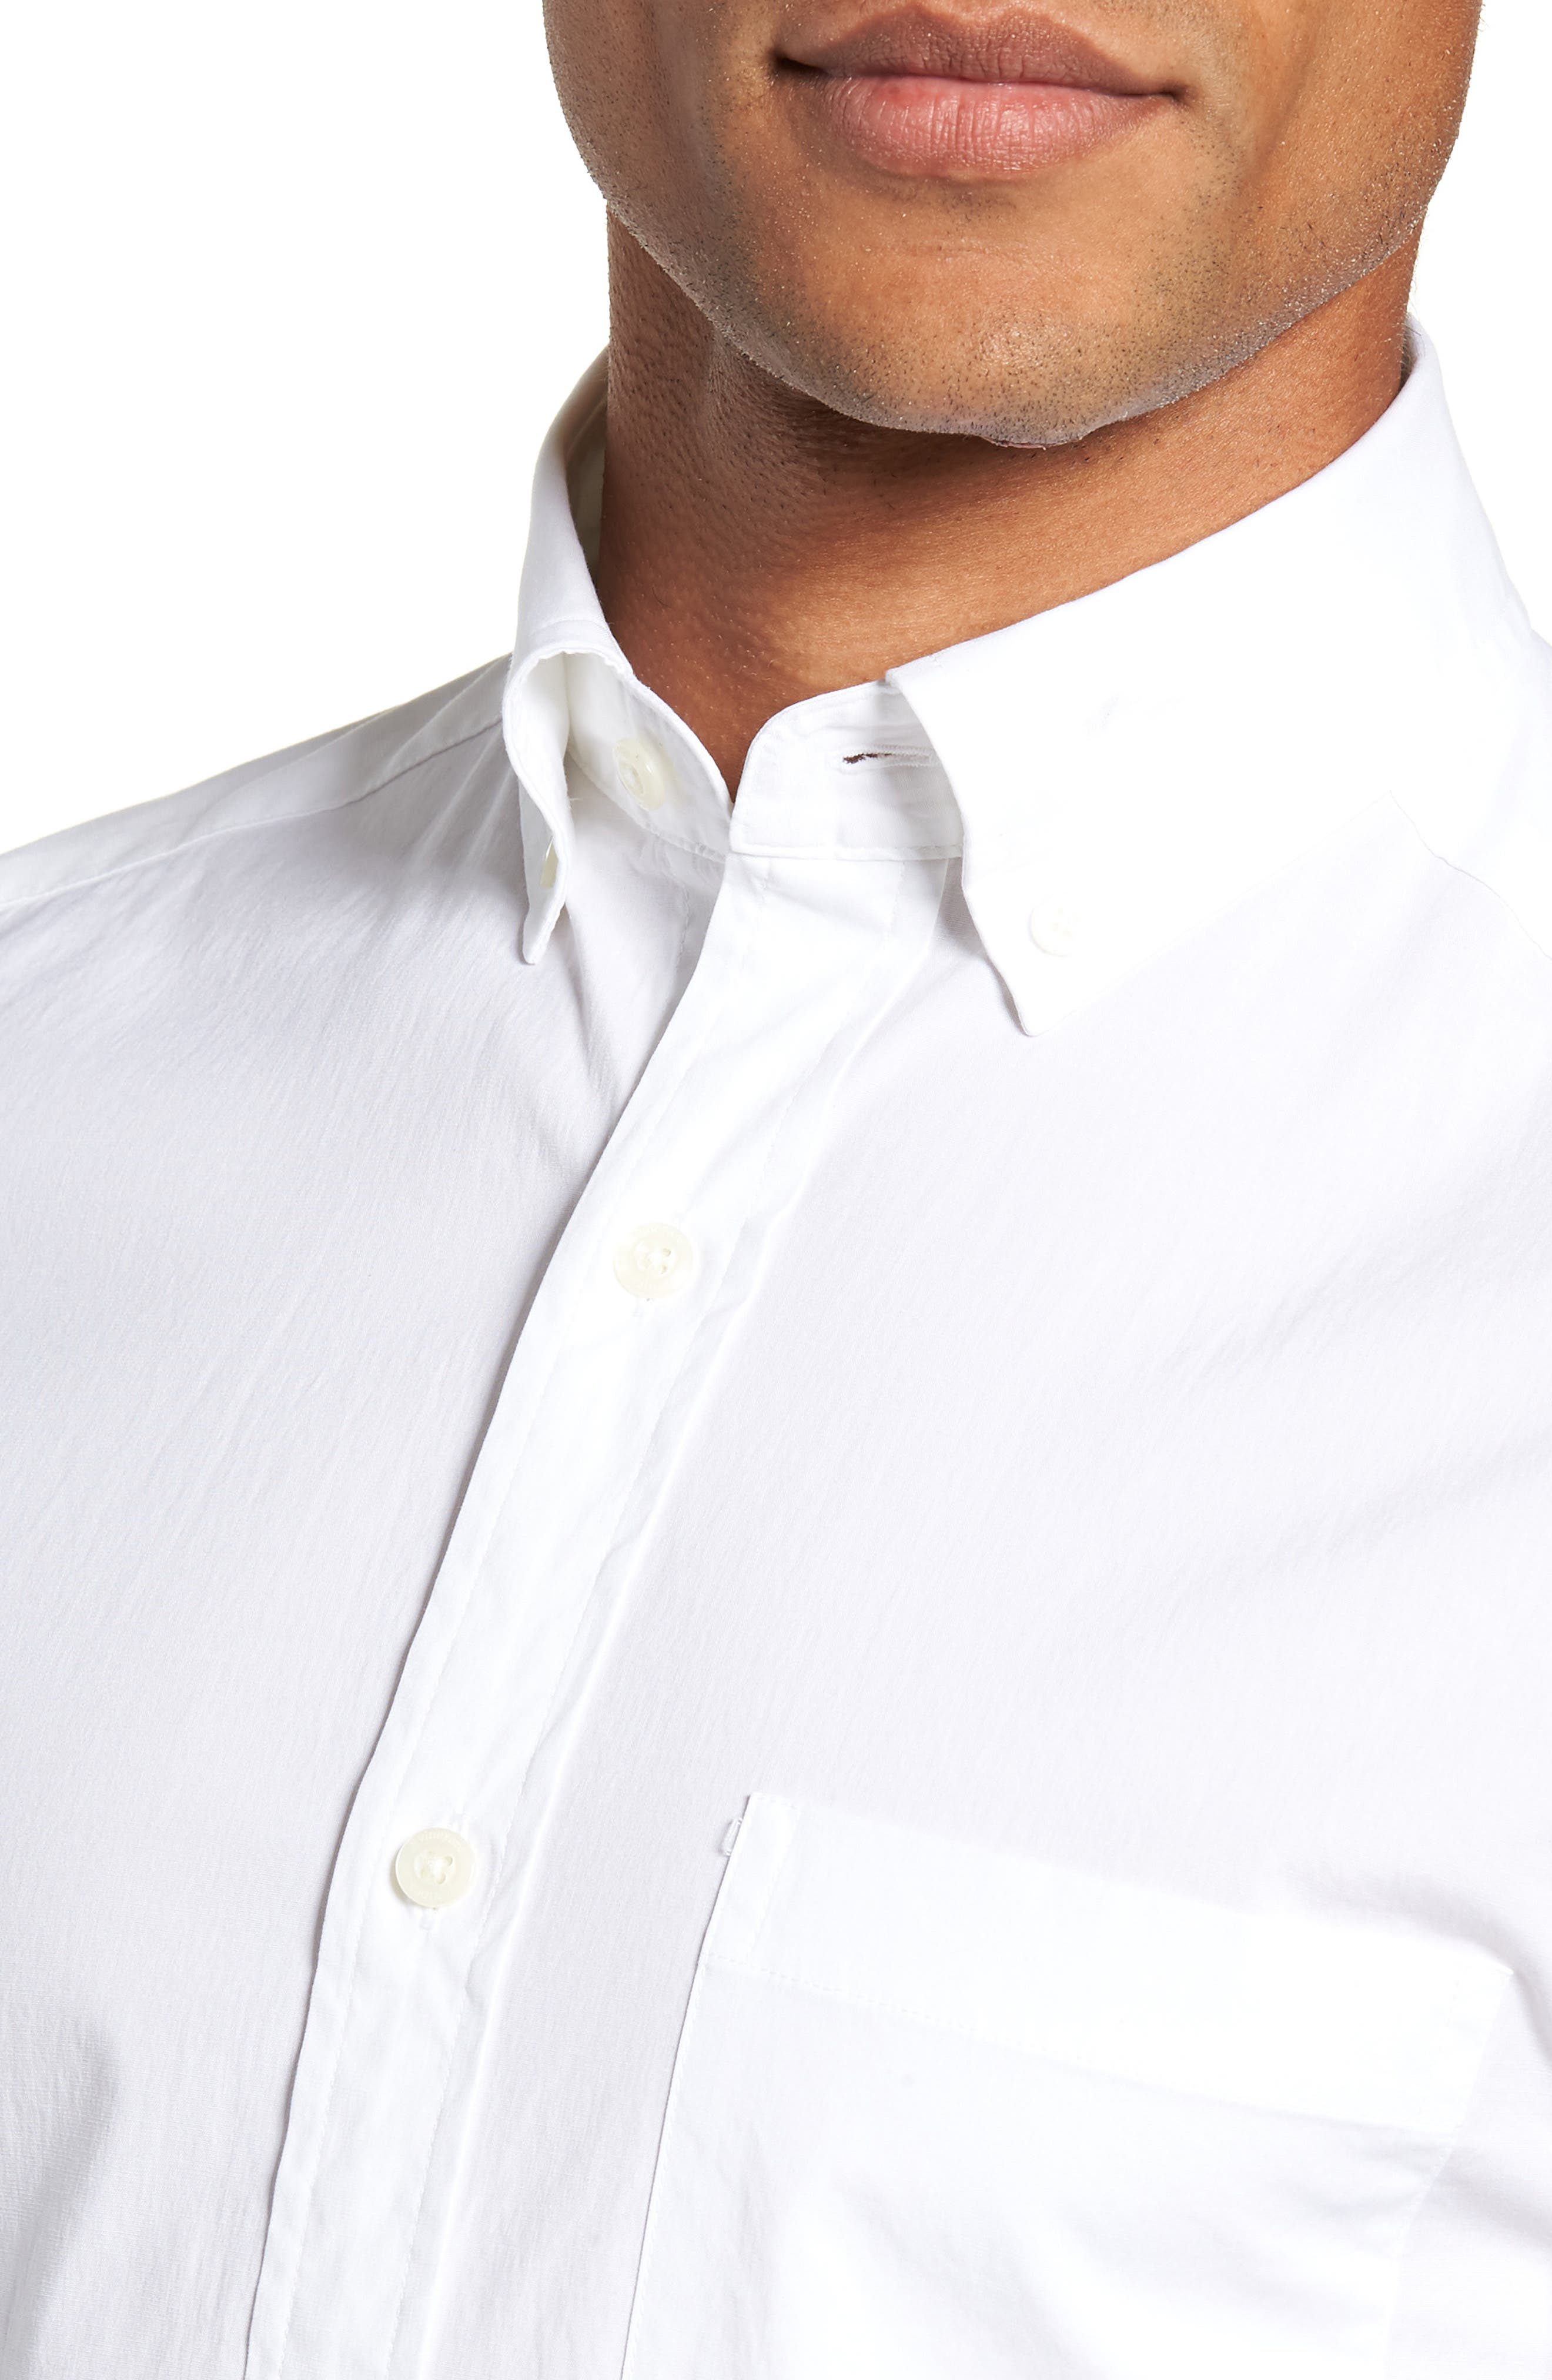 Eoe Murray Regular Fit Sport Shirt,                             Alternate thumbnail 2, color,                             WHITE CAP